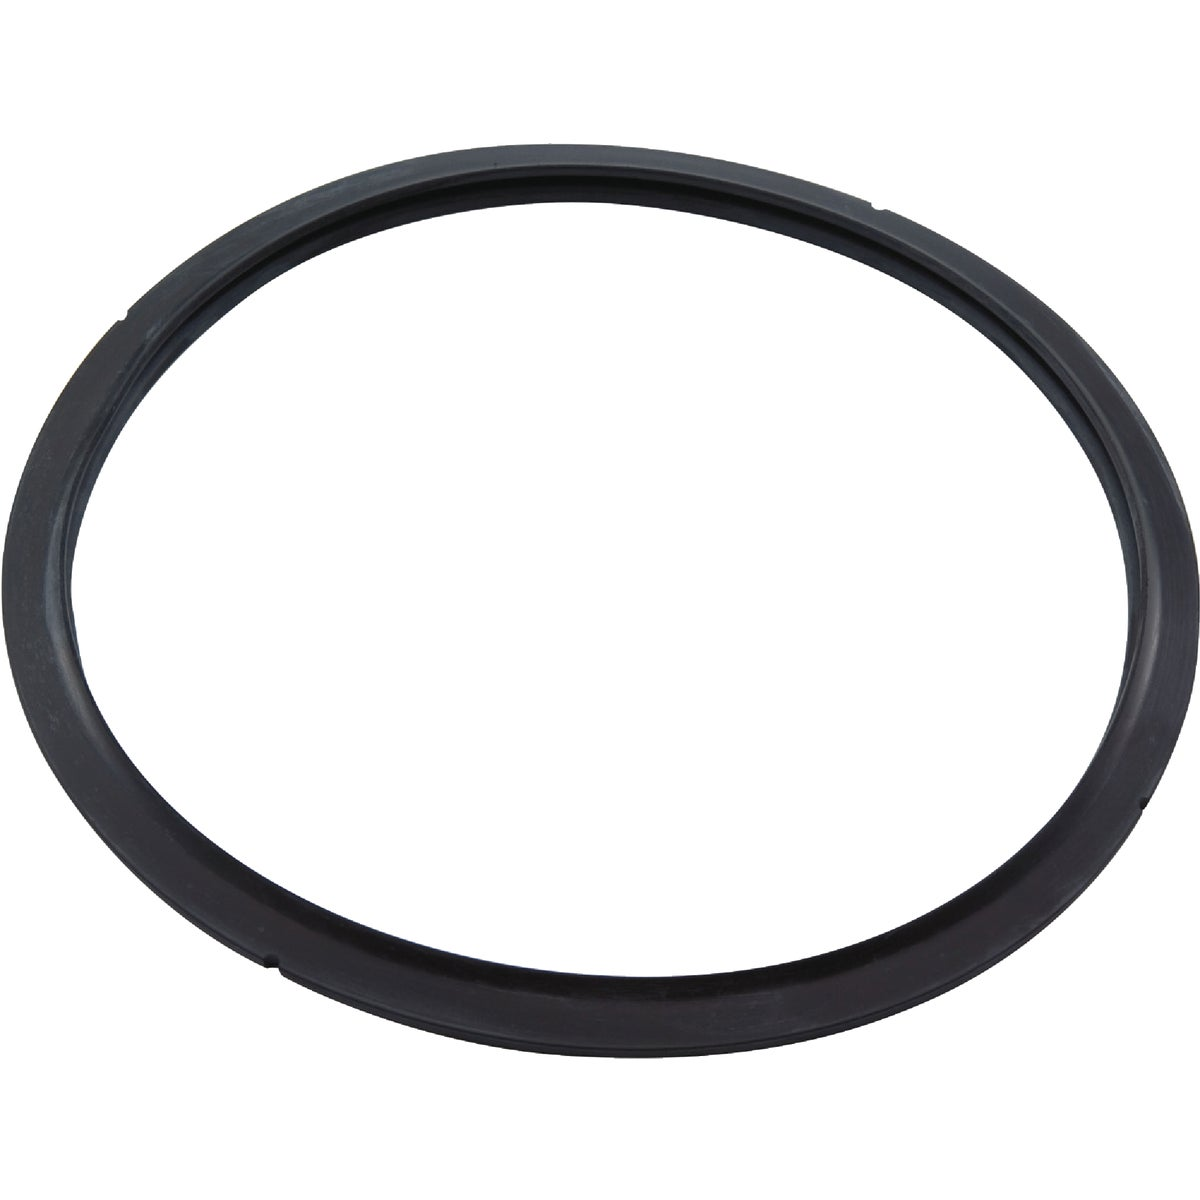 12-22QT REPLACE GASKET - 9882000MW by T Fal Wearever